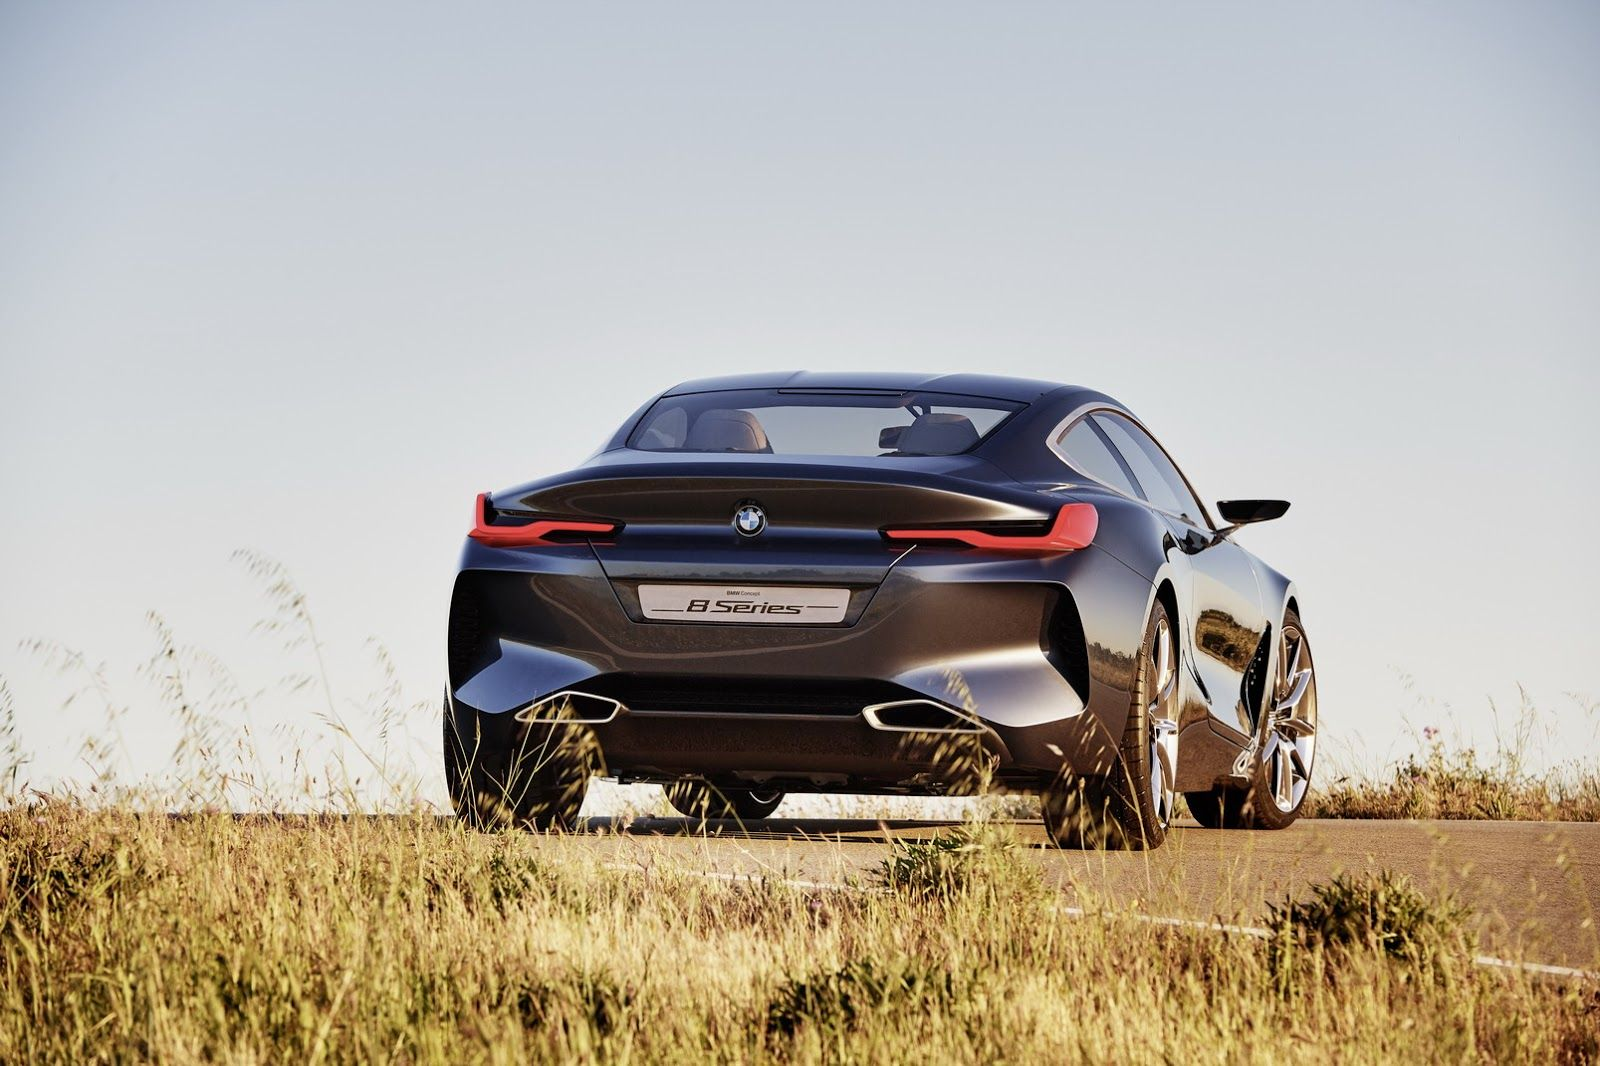 New bmw 8 series concept revealed coming in 2018 72 pics videos bmw conceptnew bmwvideoshtmlcars